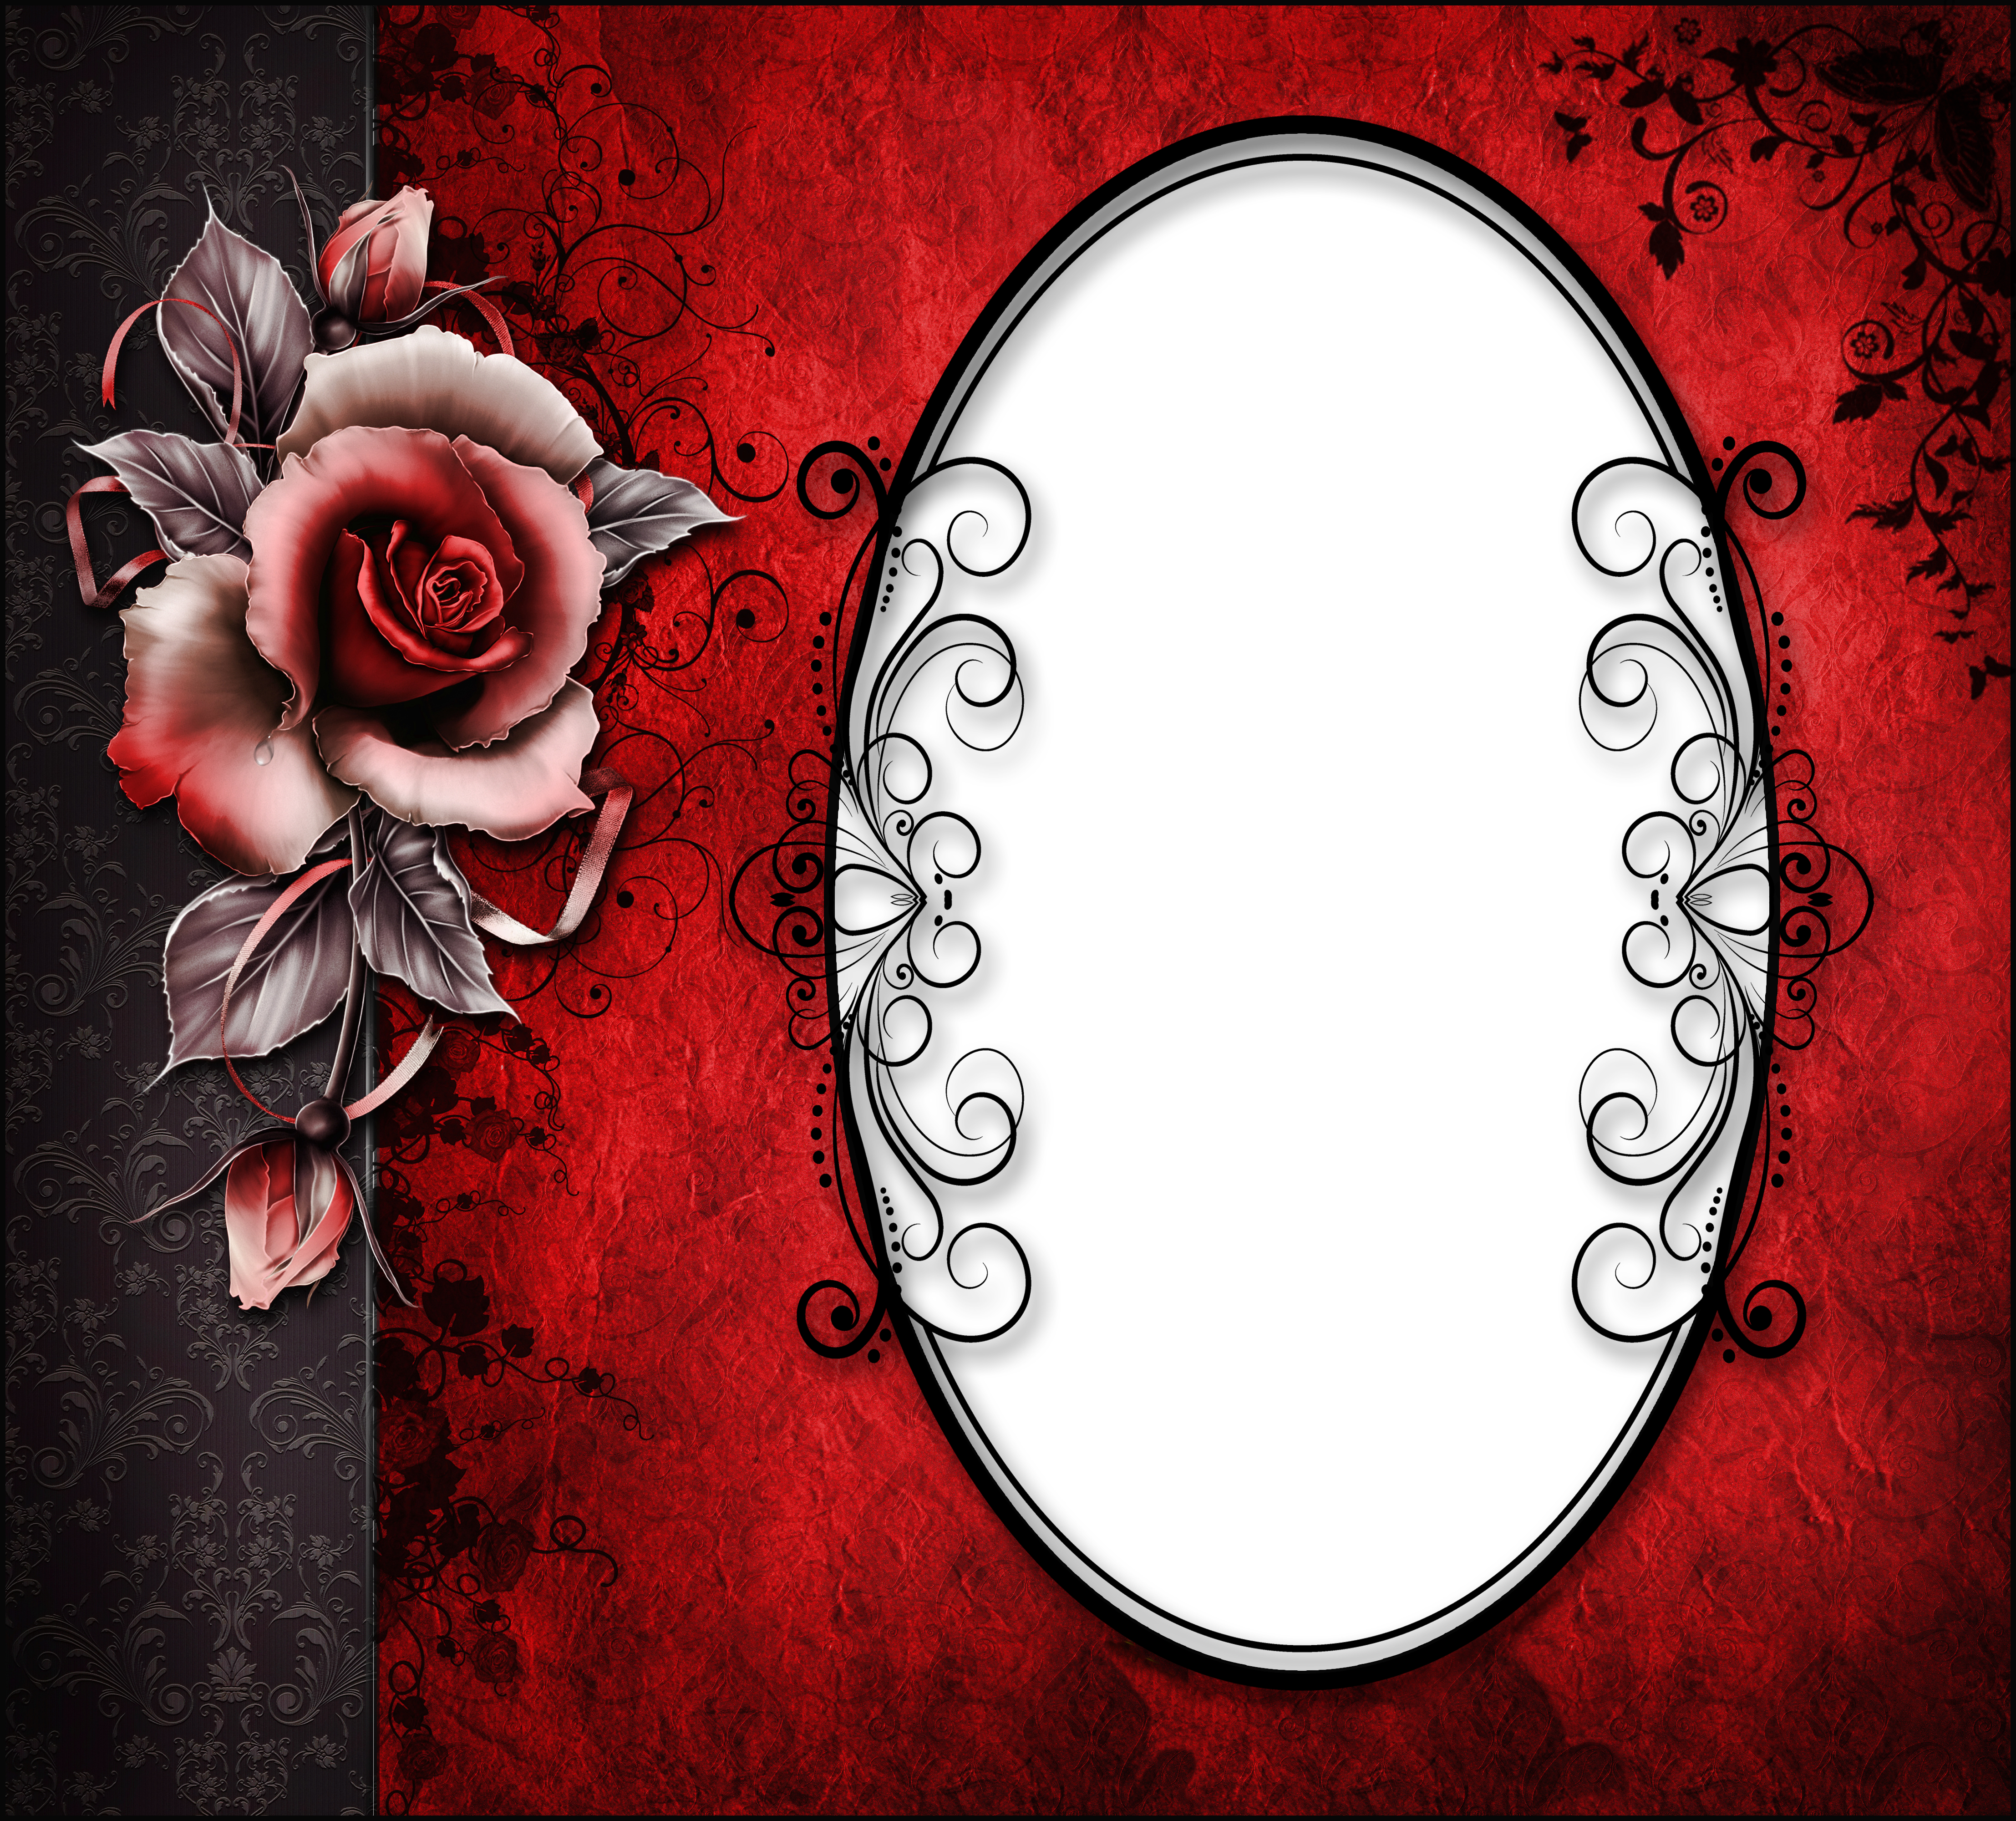 Red black frame clipart clipart royalty free library Red and Black Transparent Frame with Rose | Gallery ... clipart royalty free library